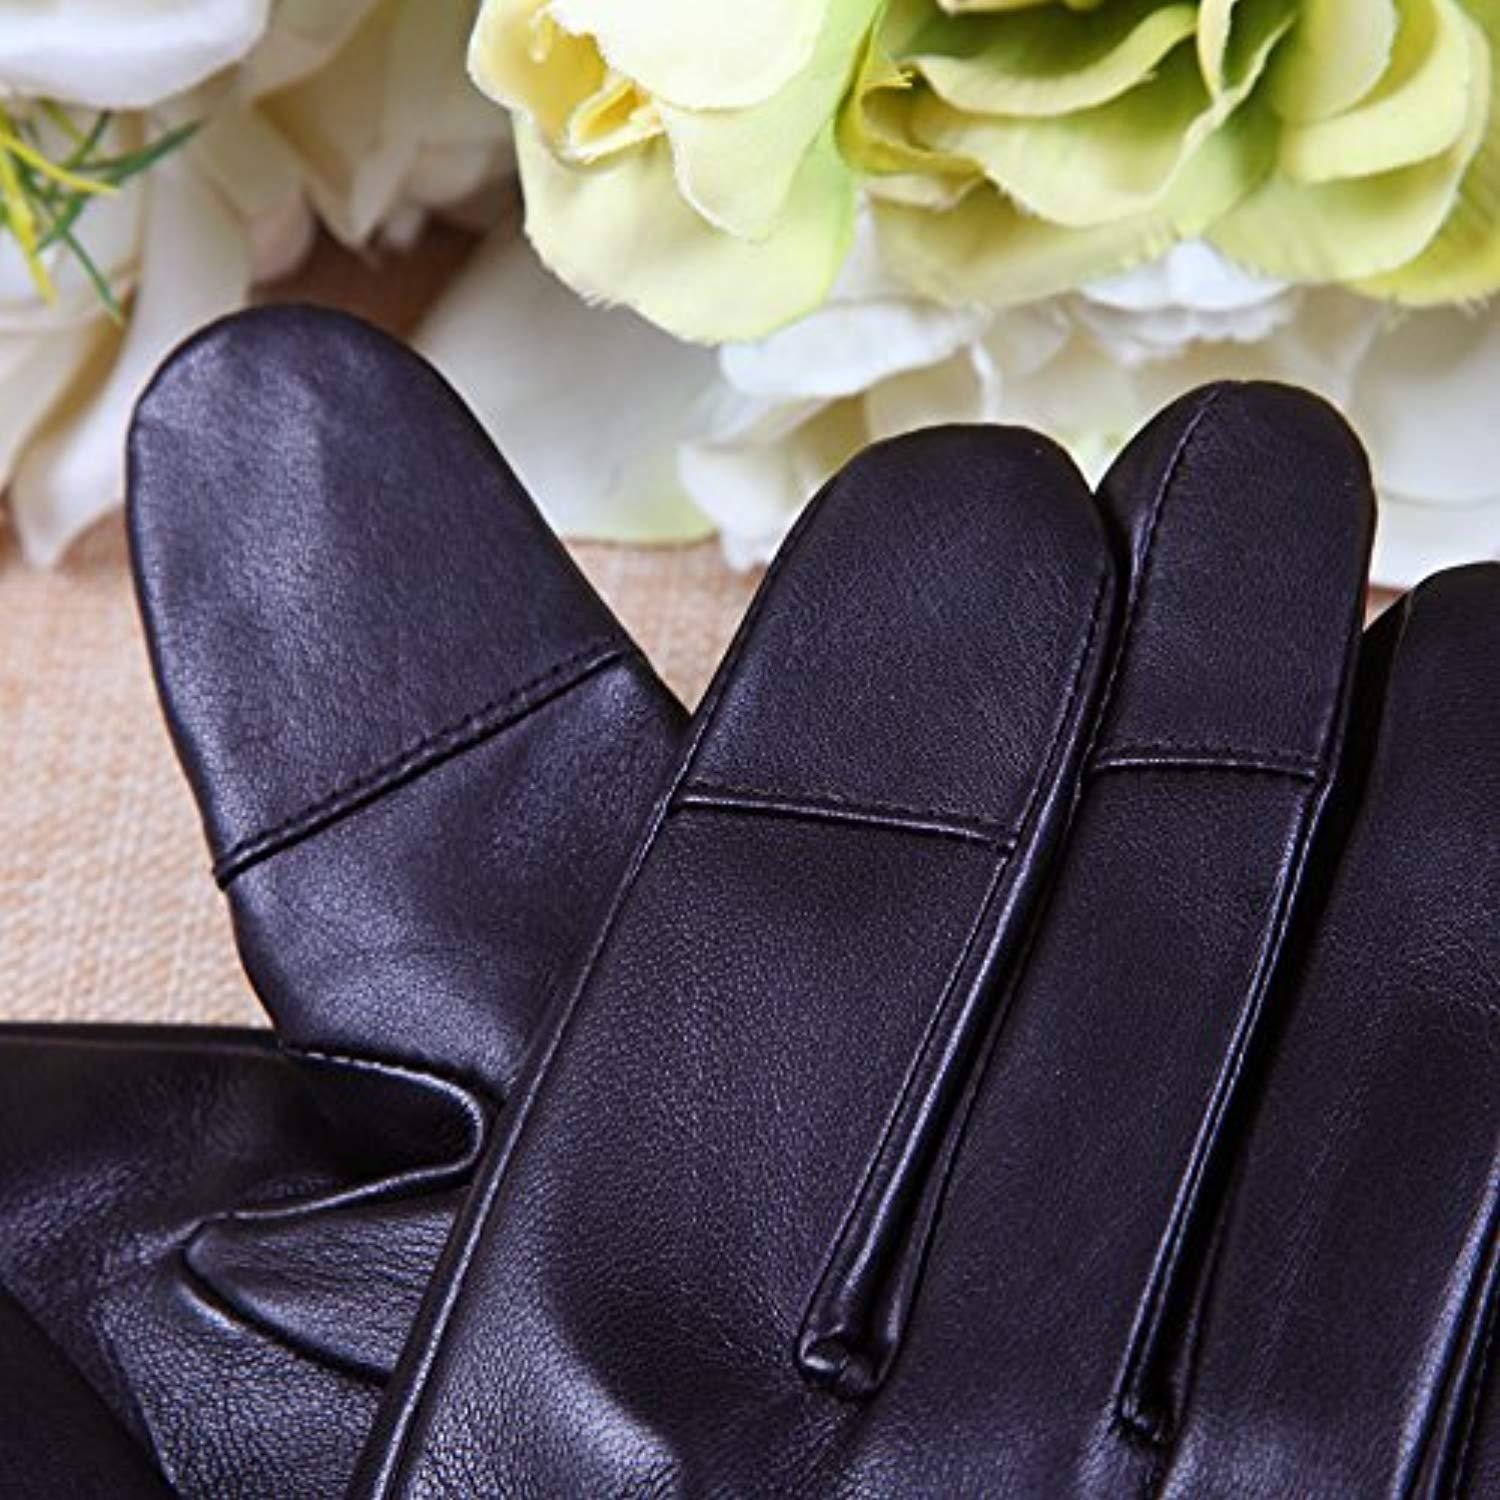 Mens Texting Touchscreen Winter Warm Nappa Leather Daily Dress Driving Gloves Wool//Cashmere Blend Cuff